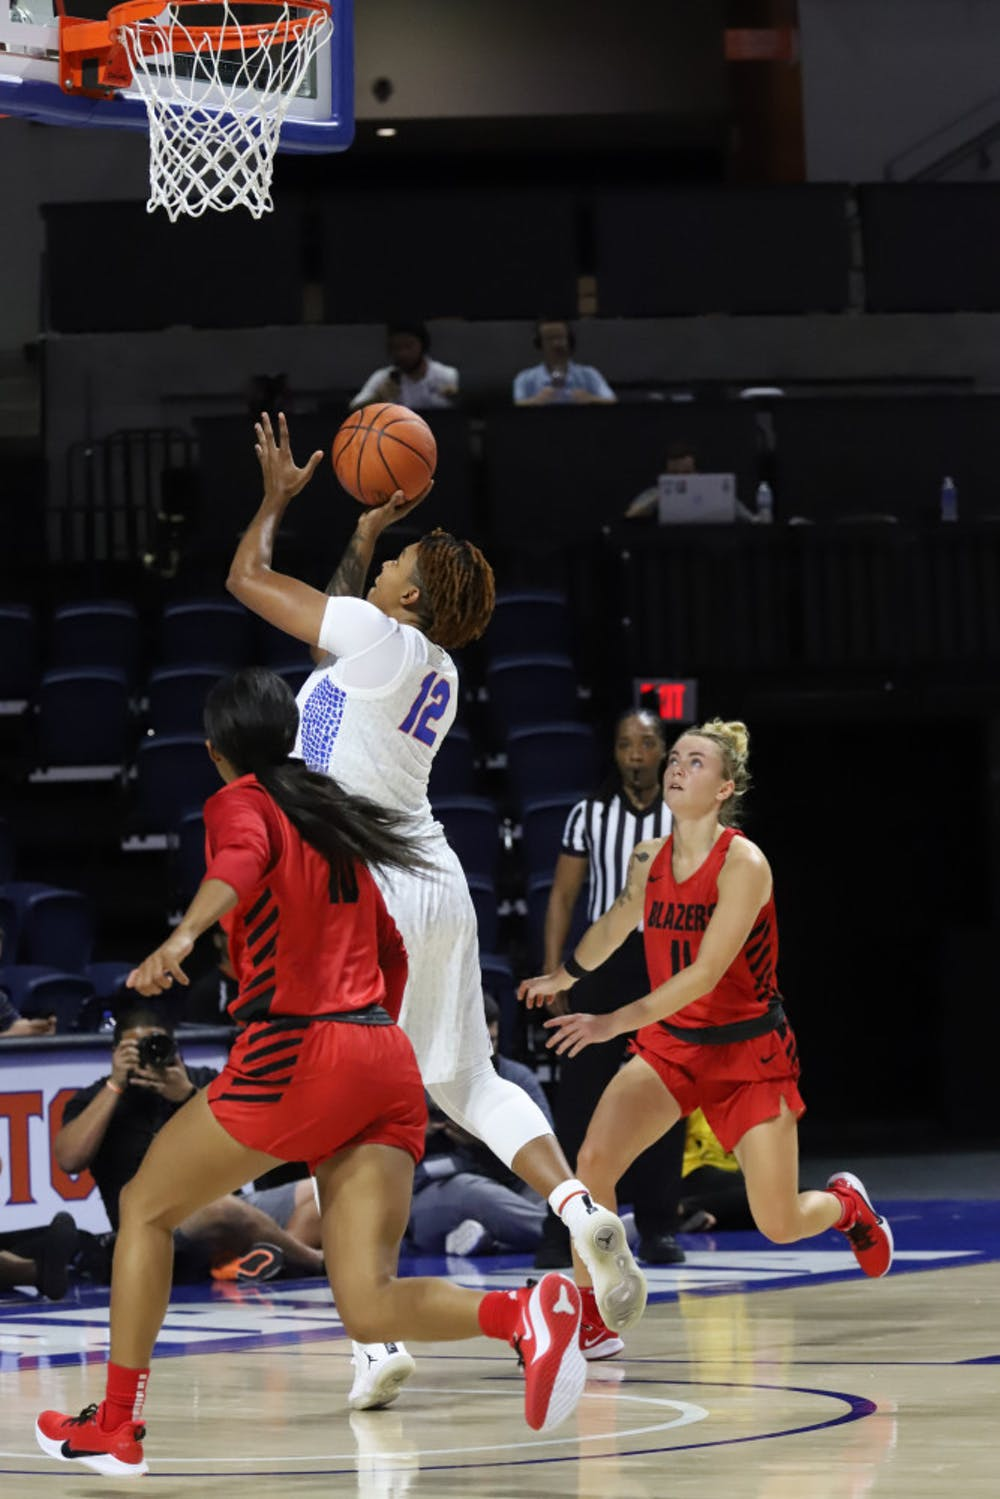 """<p dir=""""ltr"""">Forward Zada Williams had 13 points on 6-of-9 shooting in UF's exhibition win over Valdosta State.</p>"""